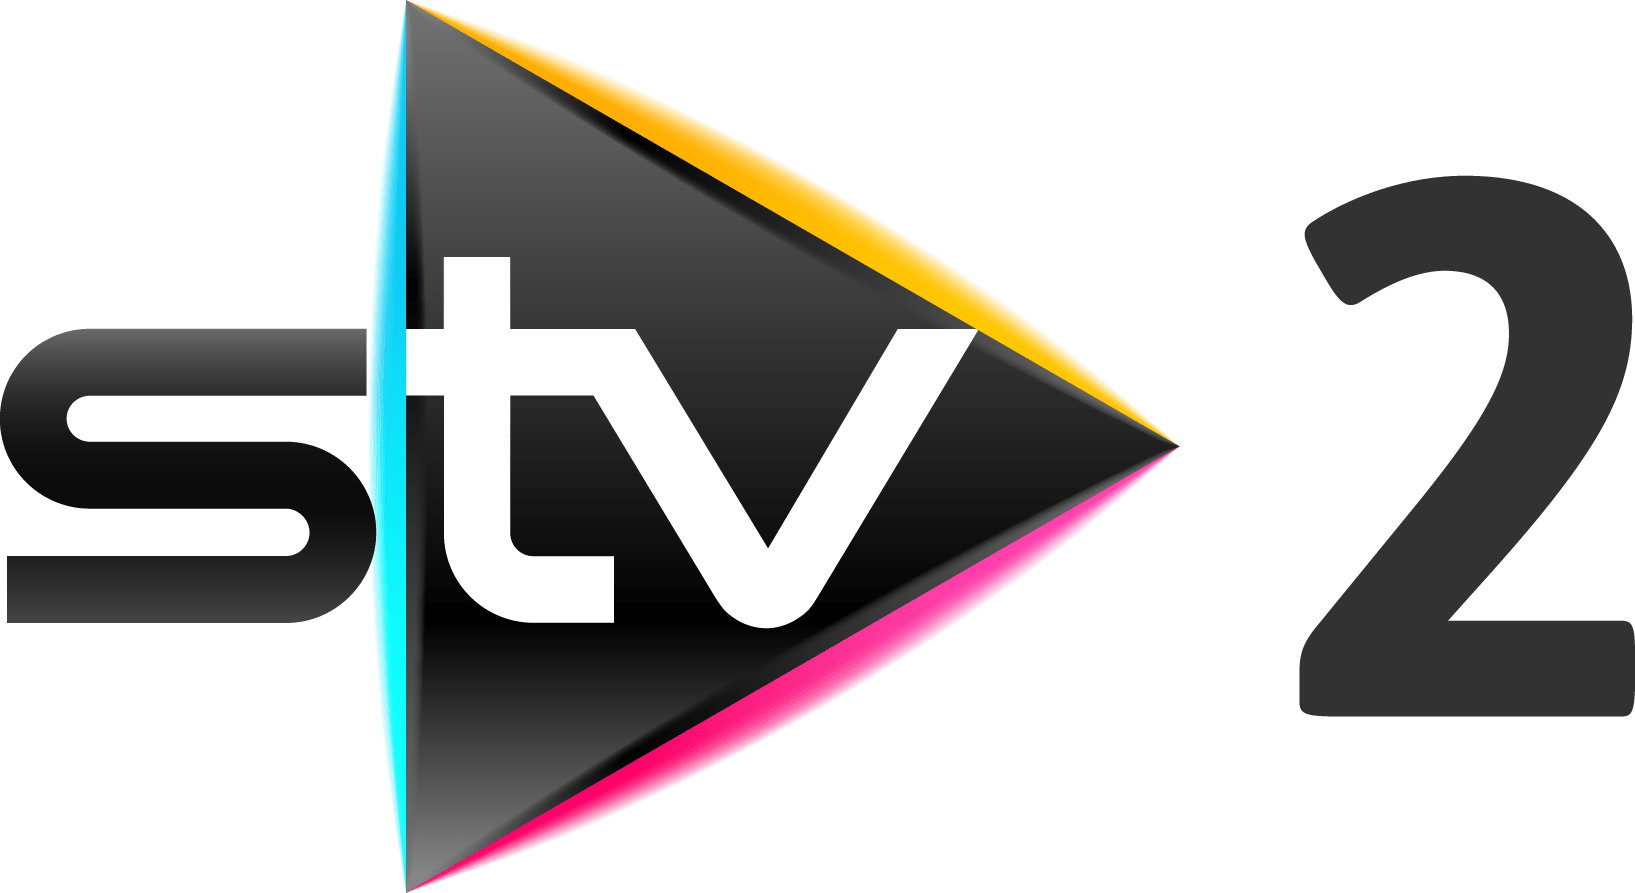 STV to close loss-making STV2 channel